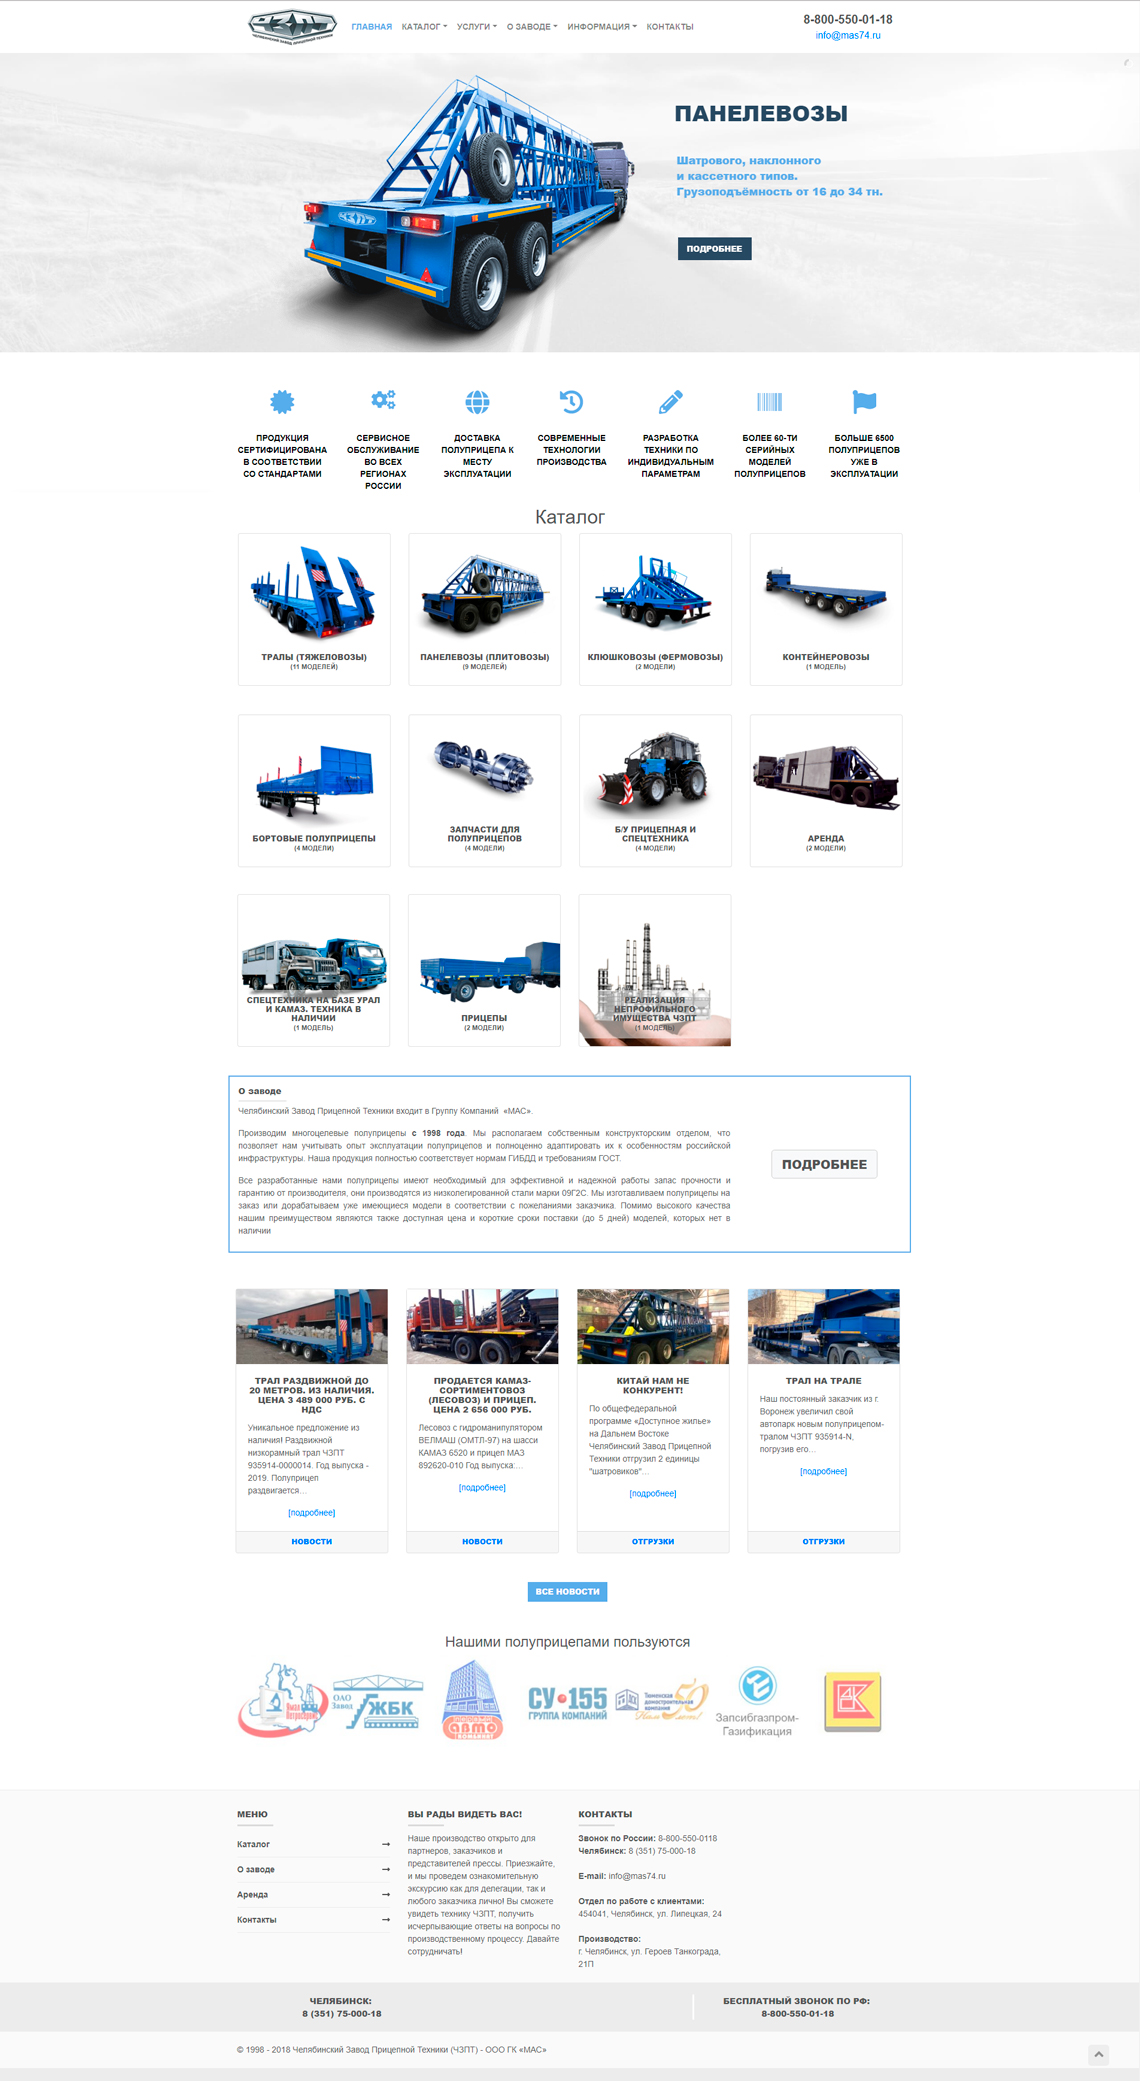 Website development for the plant of trailed equipment — mas-pricep.ru